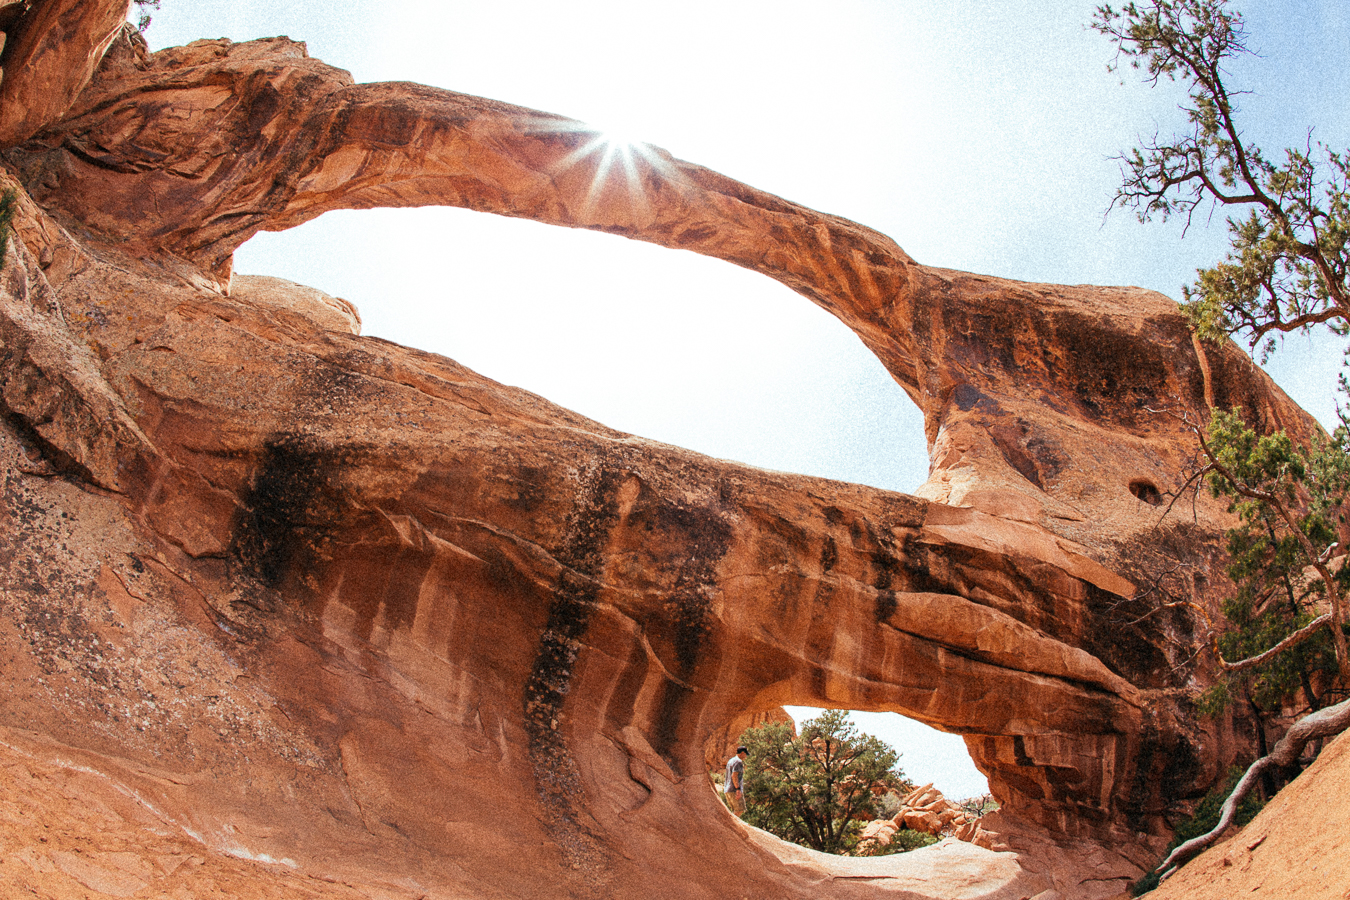 A few miles in on this hot hot day I finally found the Double Arch. I enjoyeddouble theshade.